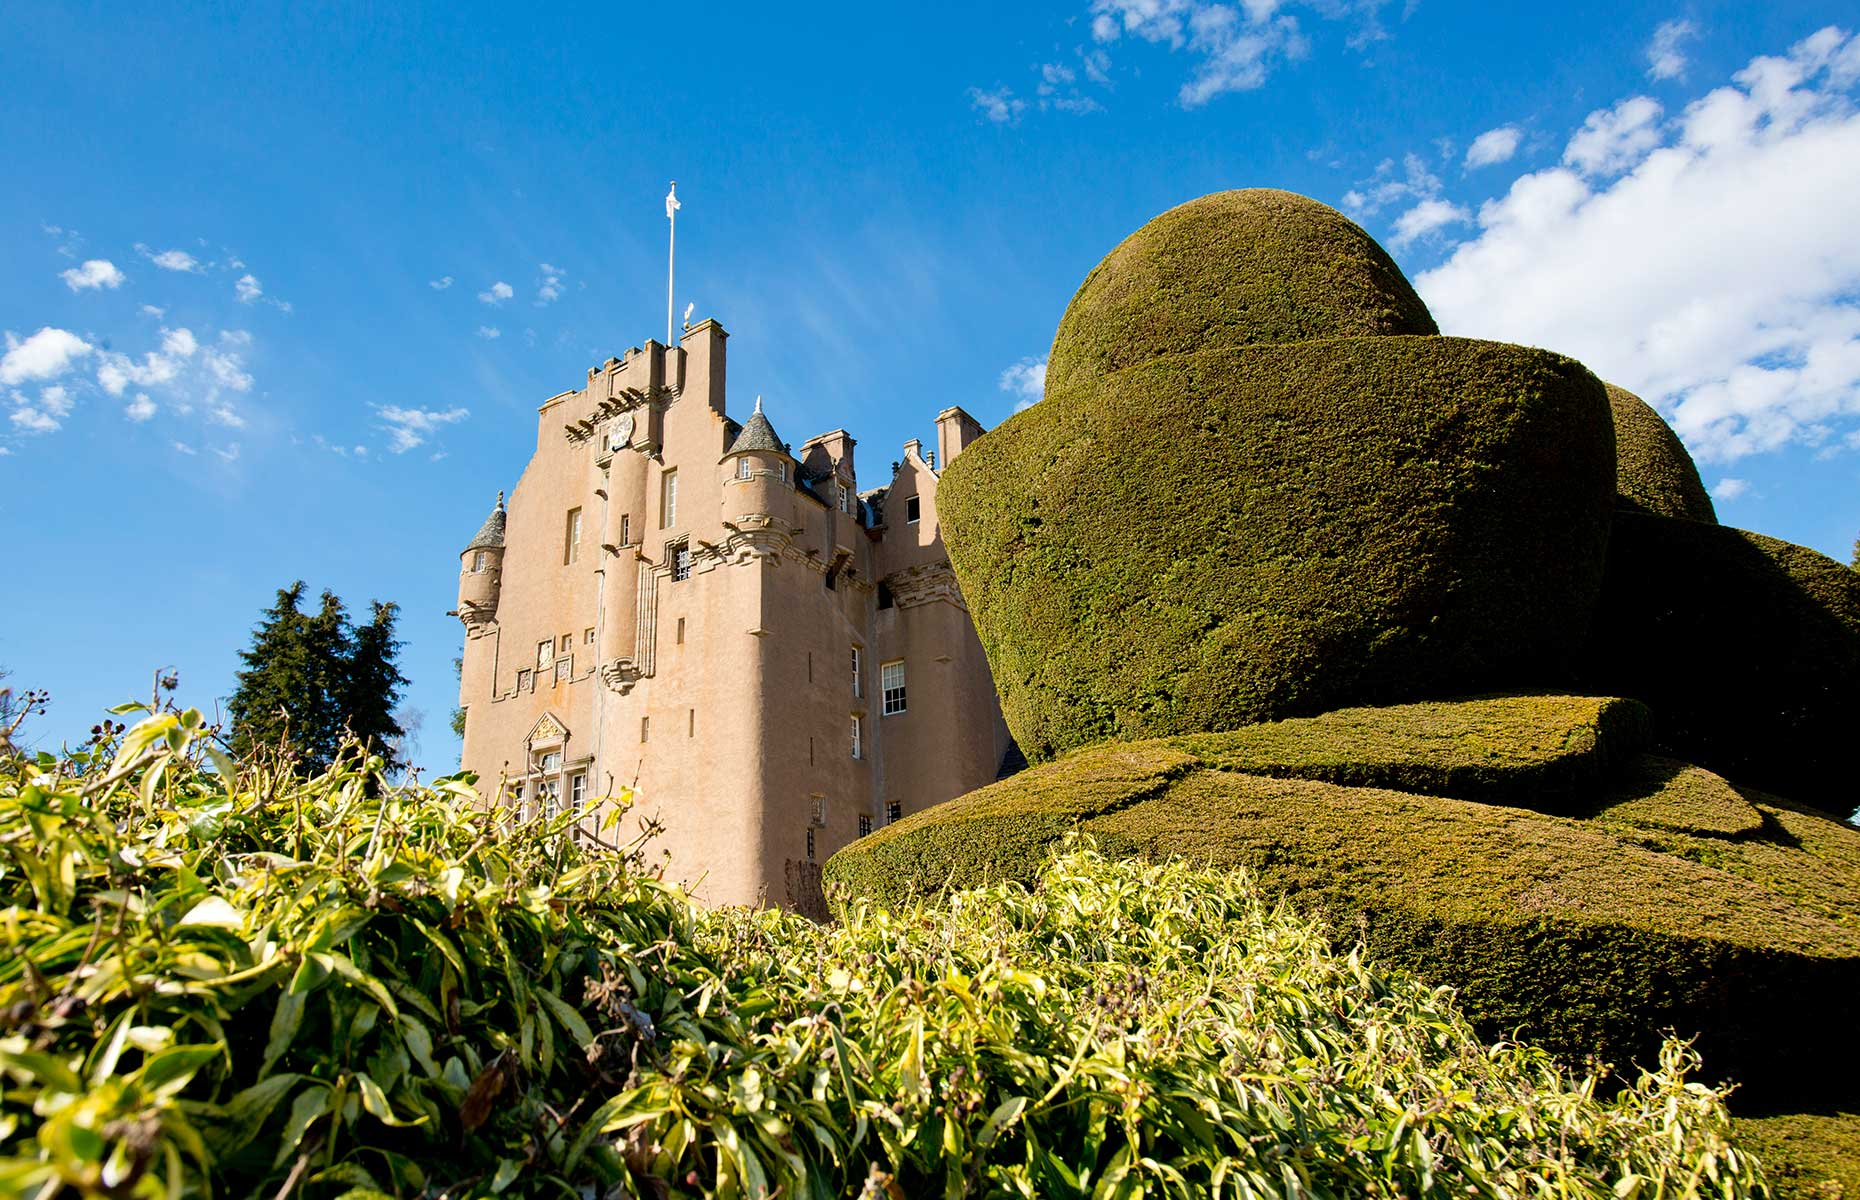 The exterior of Crathes Castle